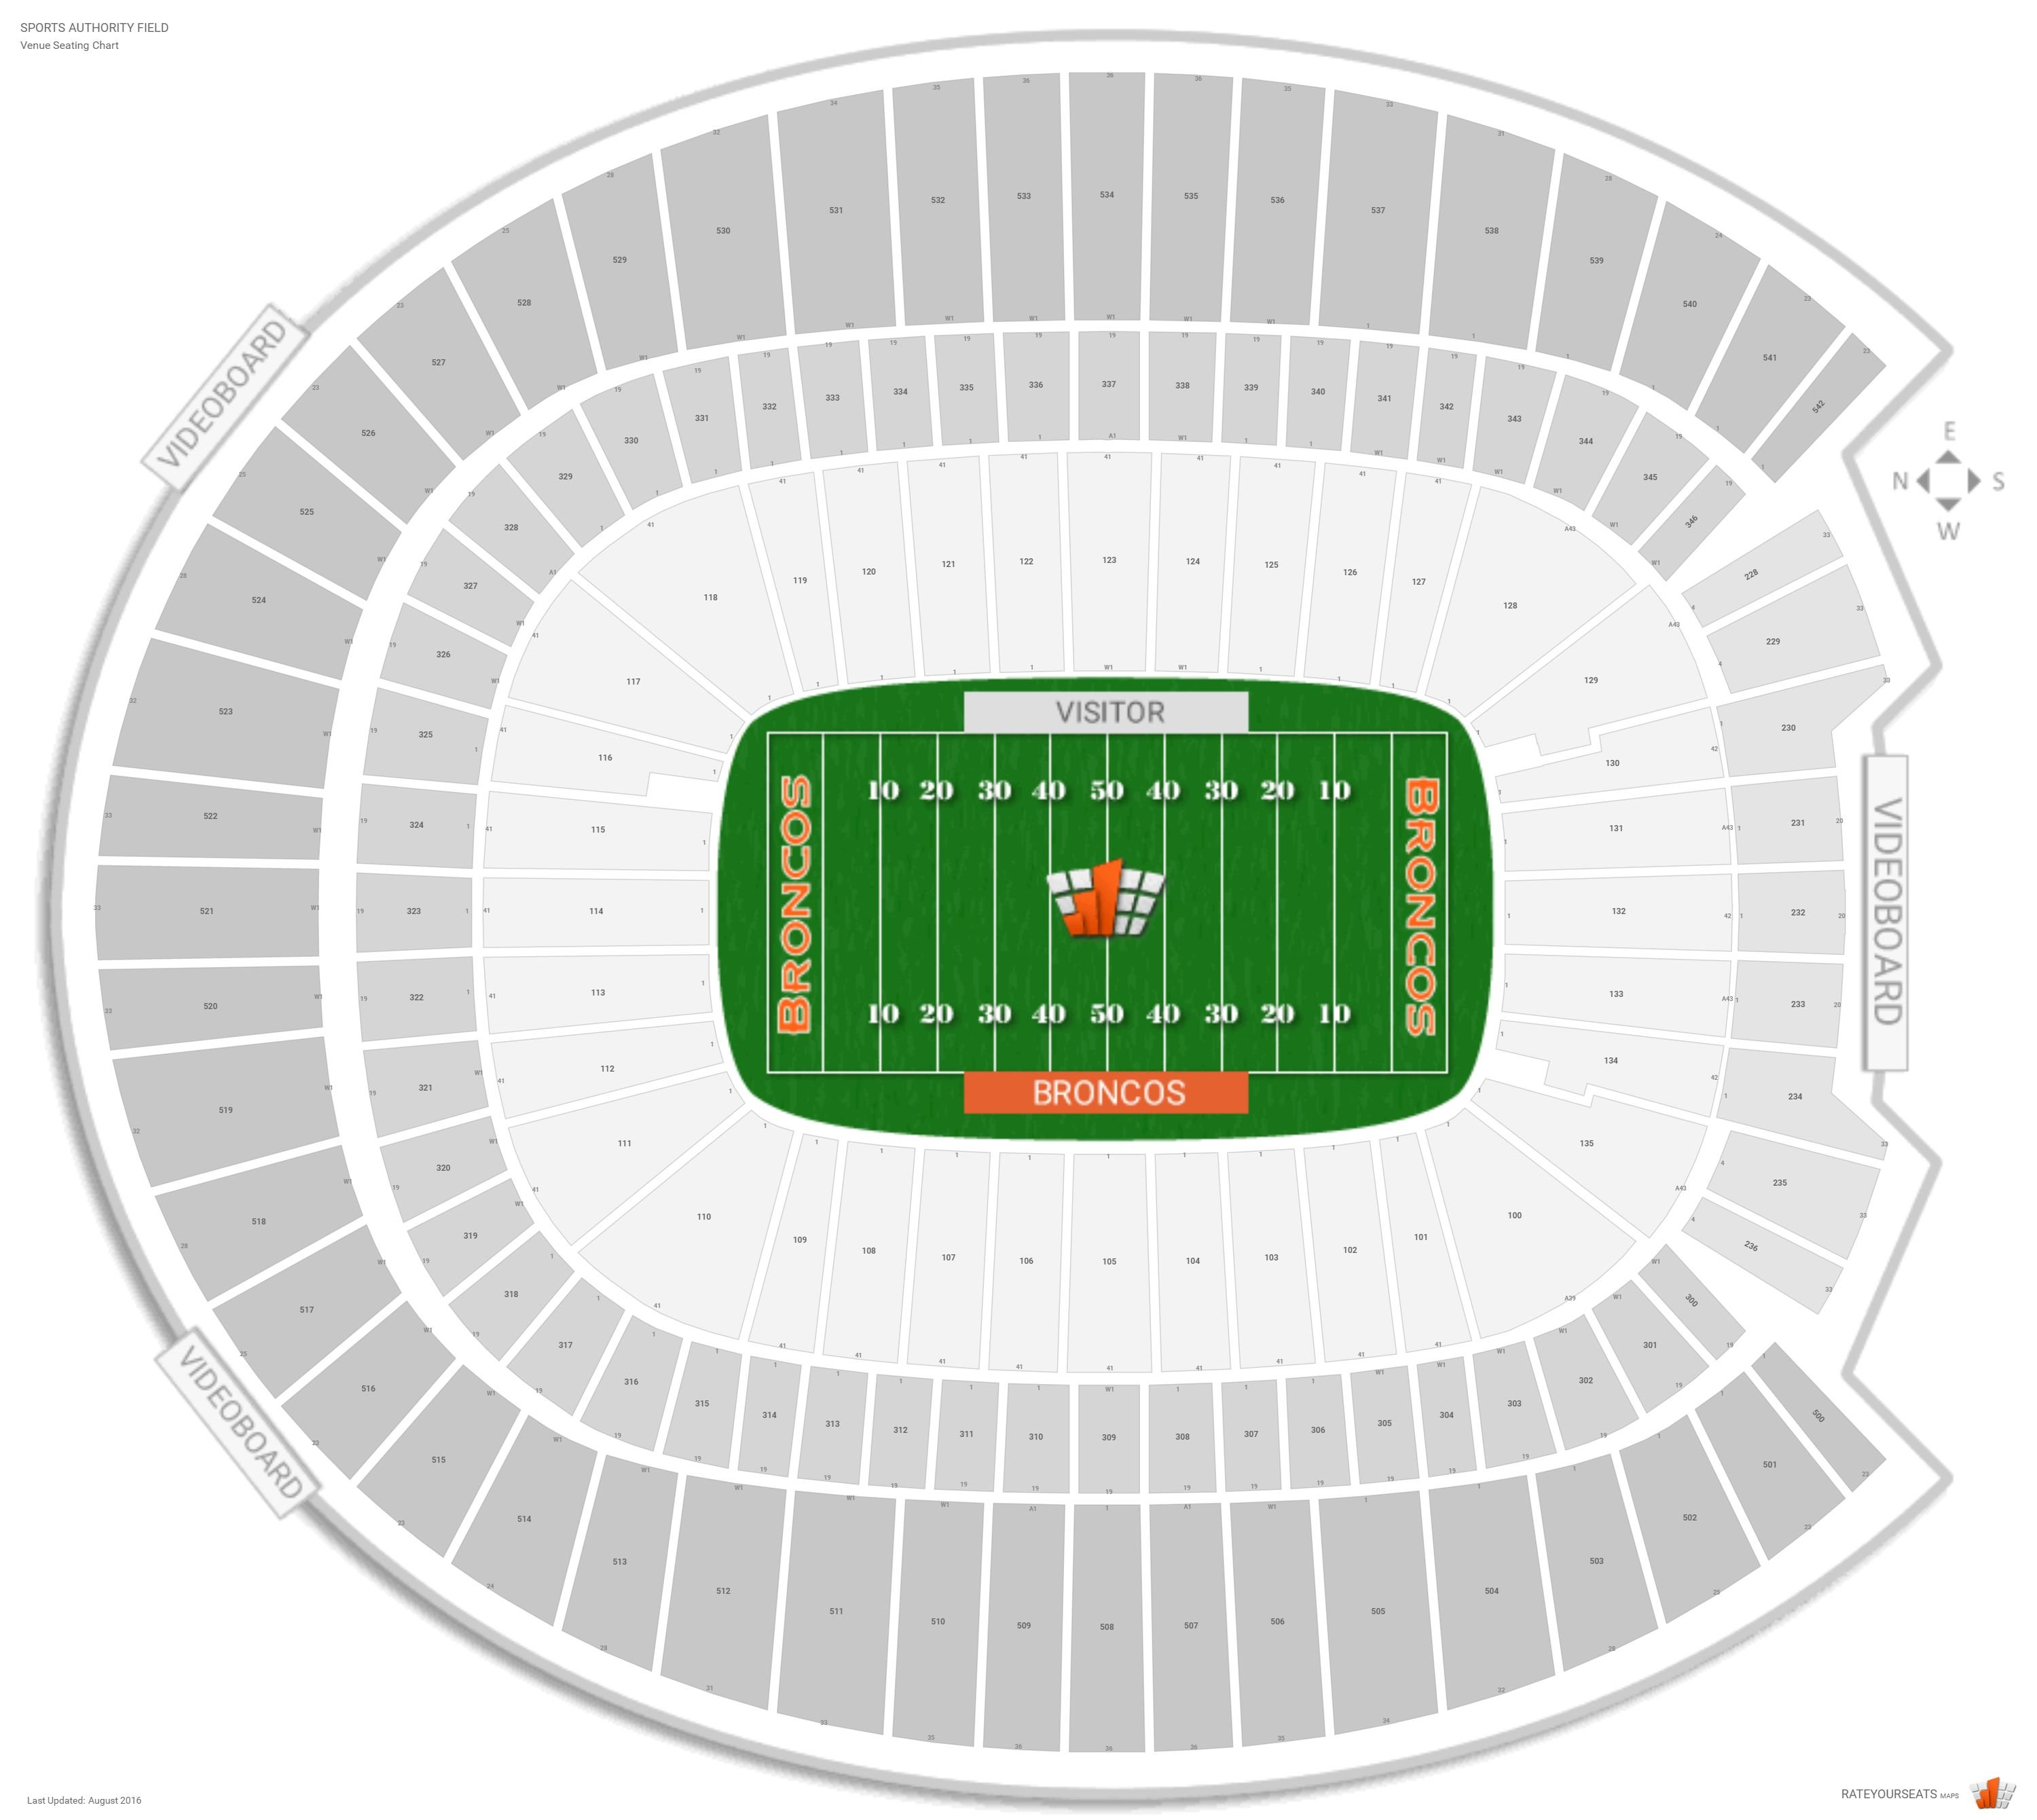 Denver Broncos Seating Chart With Seat Numbers